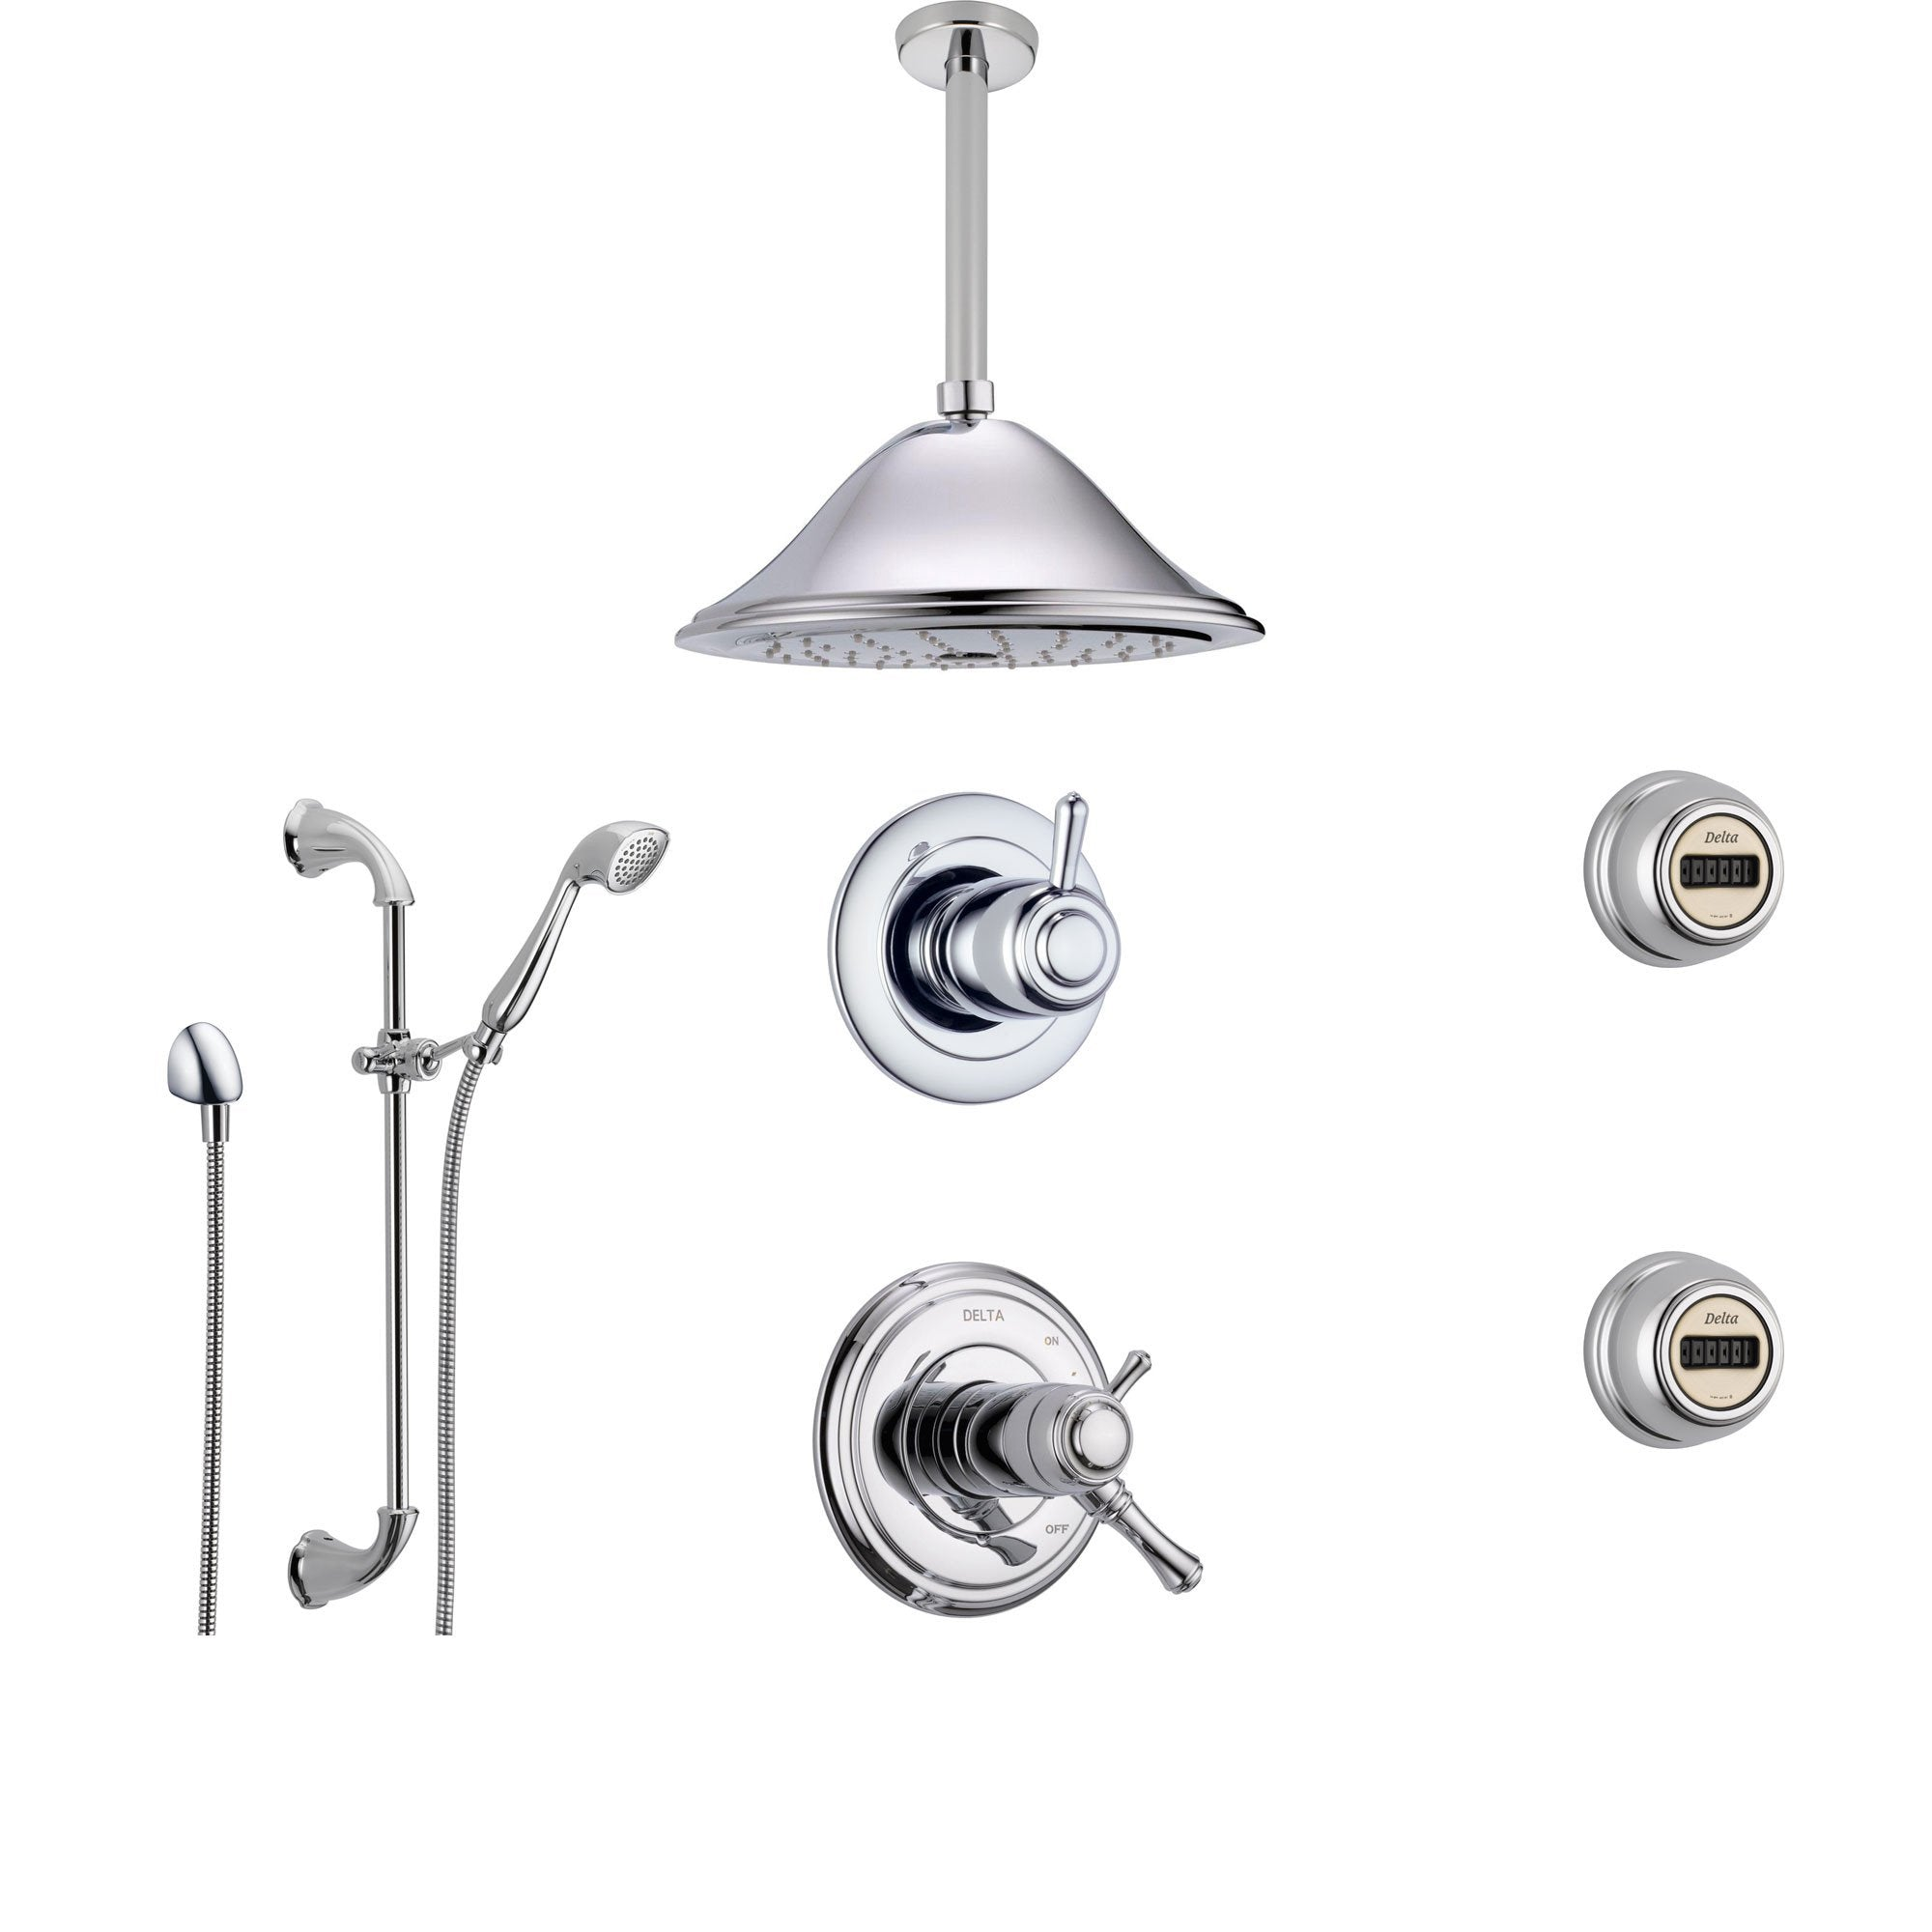 Delta Cassidy Chrome Shower System with Thermostatic Shower Handle, 6-setting Diverter, Large Ceiling Mount Rain Showerhead, Handheld Shower, and 2 Body Sprays SS17T9795